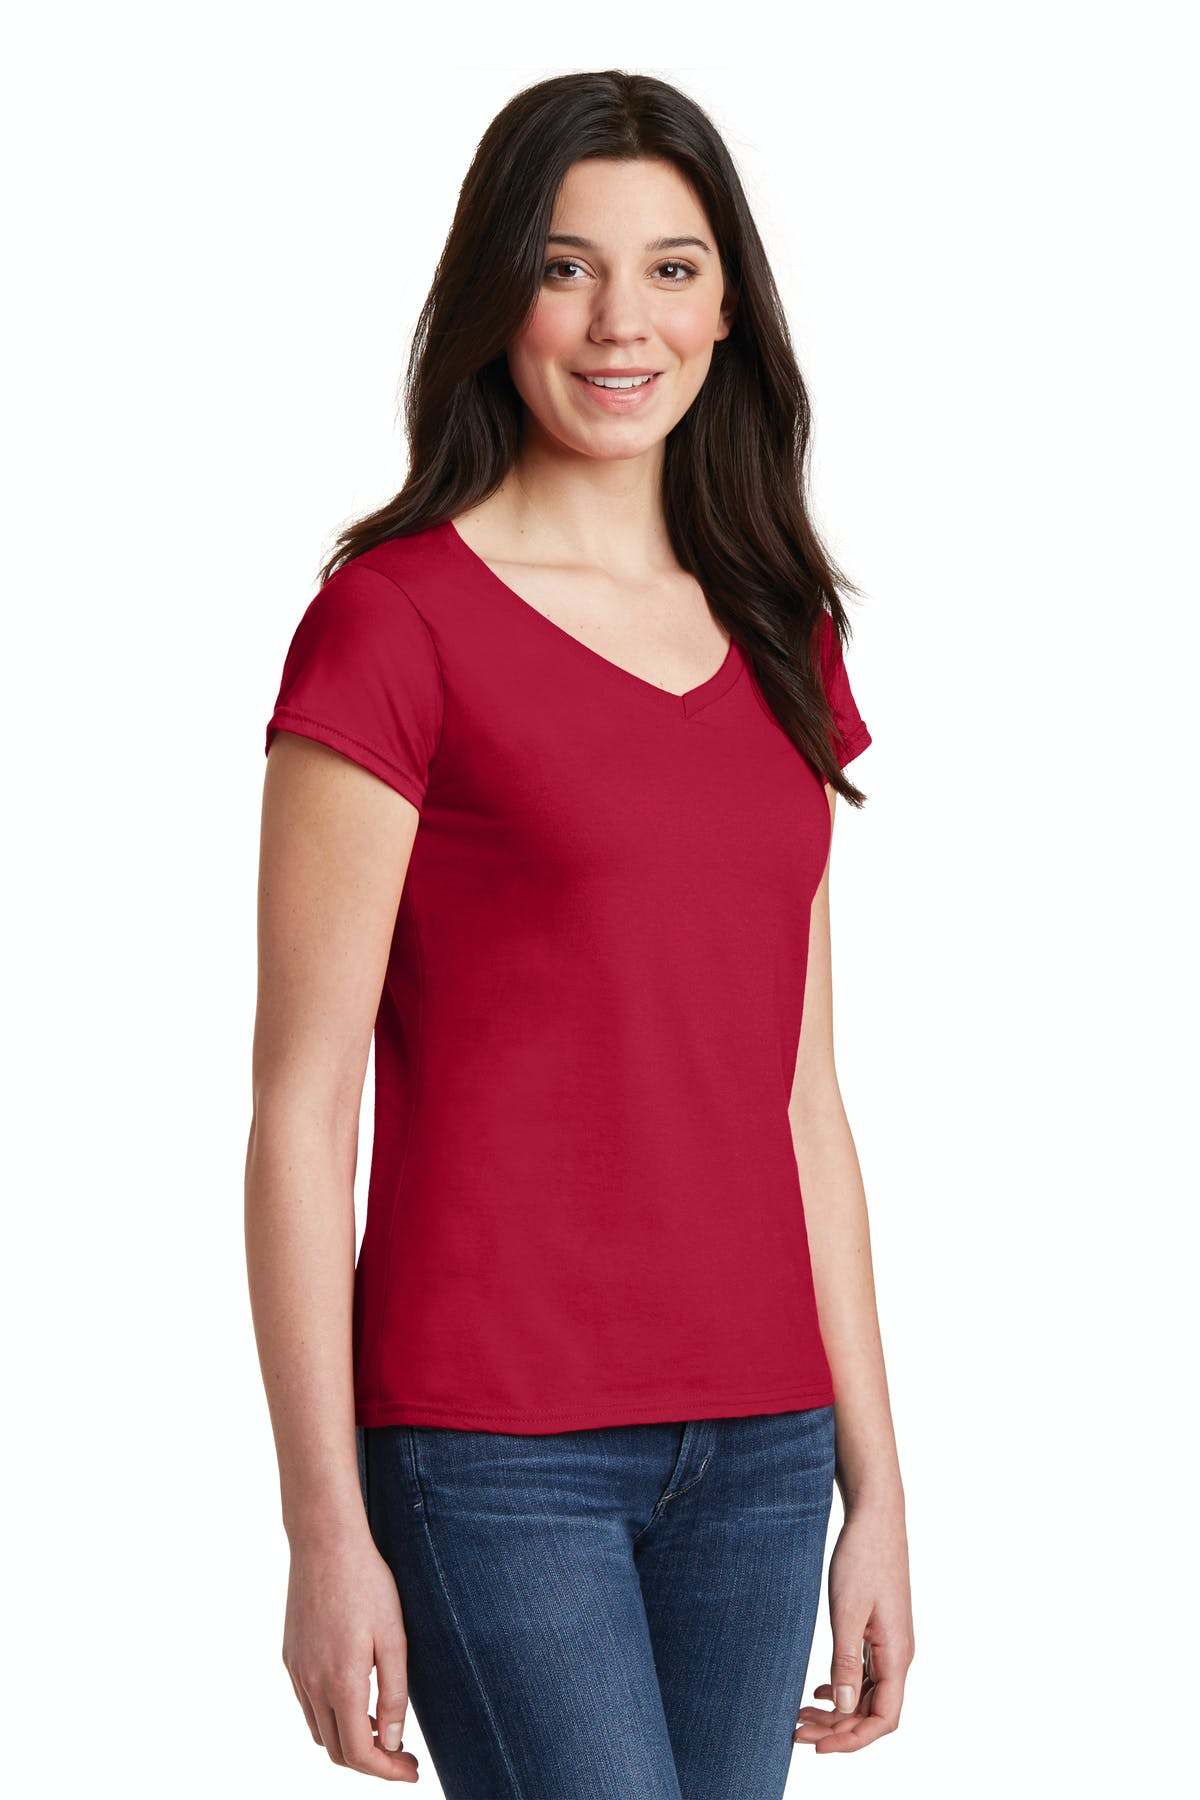 Gildan Softstyle® Junior Fit V-Neck T-Shirt - sold by PRINT CITY GRAPHICS, INC